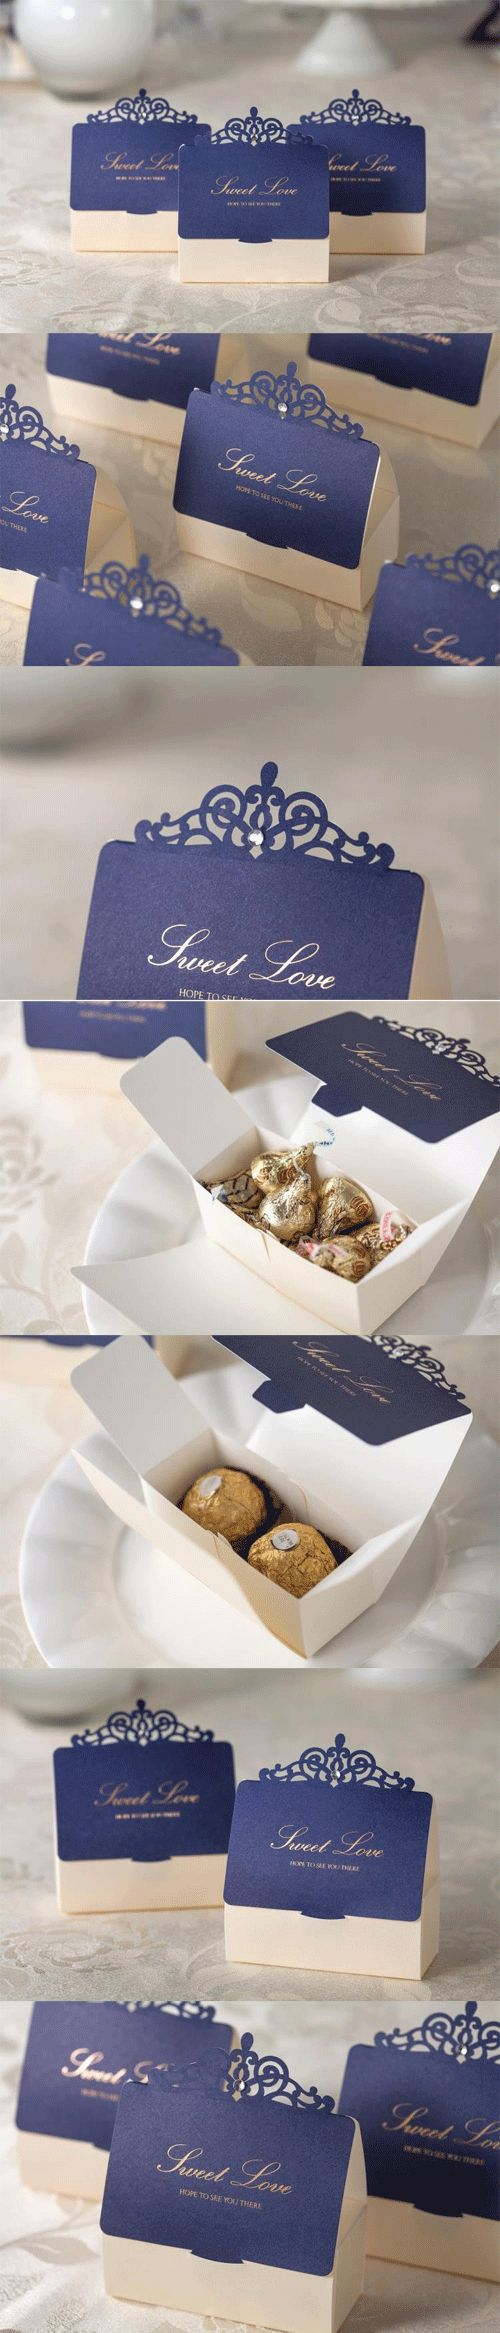 New Arrival Laser Cut Chocolate Wedding Favor Candy Box to Matching The Invitation Card CW502 #fashionweddingcards #blue #weddingfavor